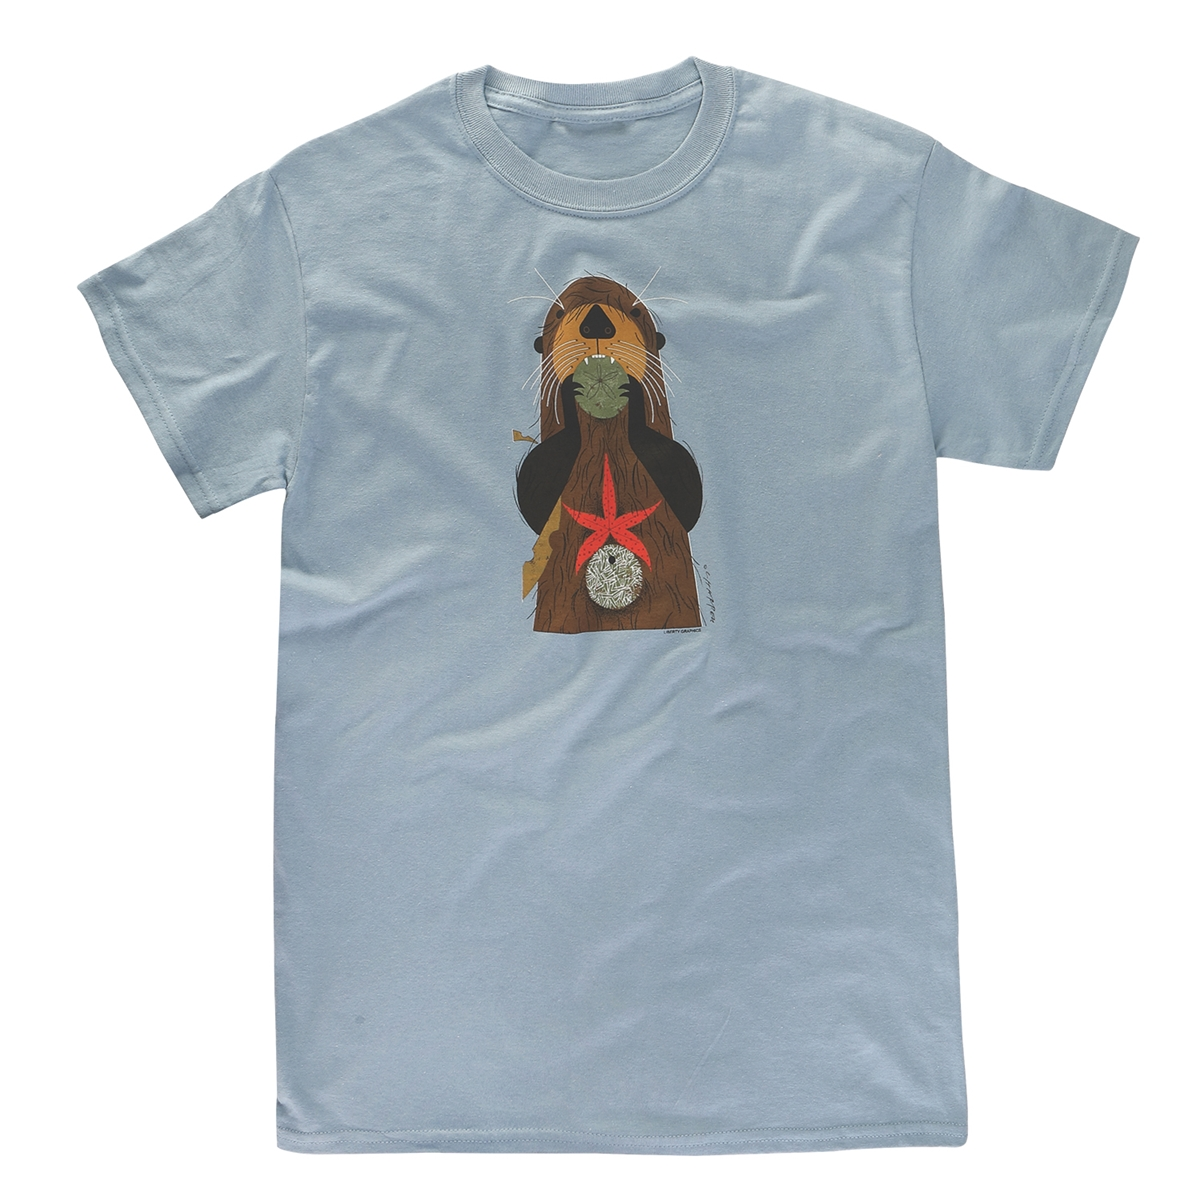 Otterly Delicious Organic Tee